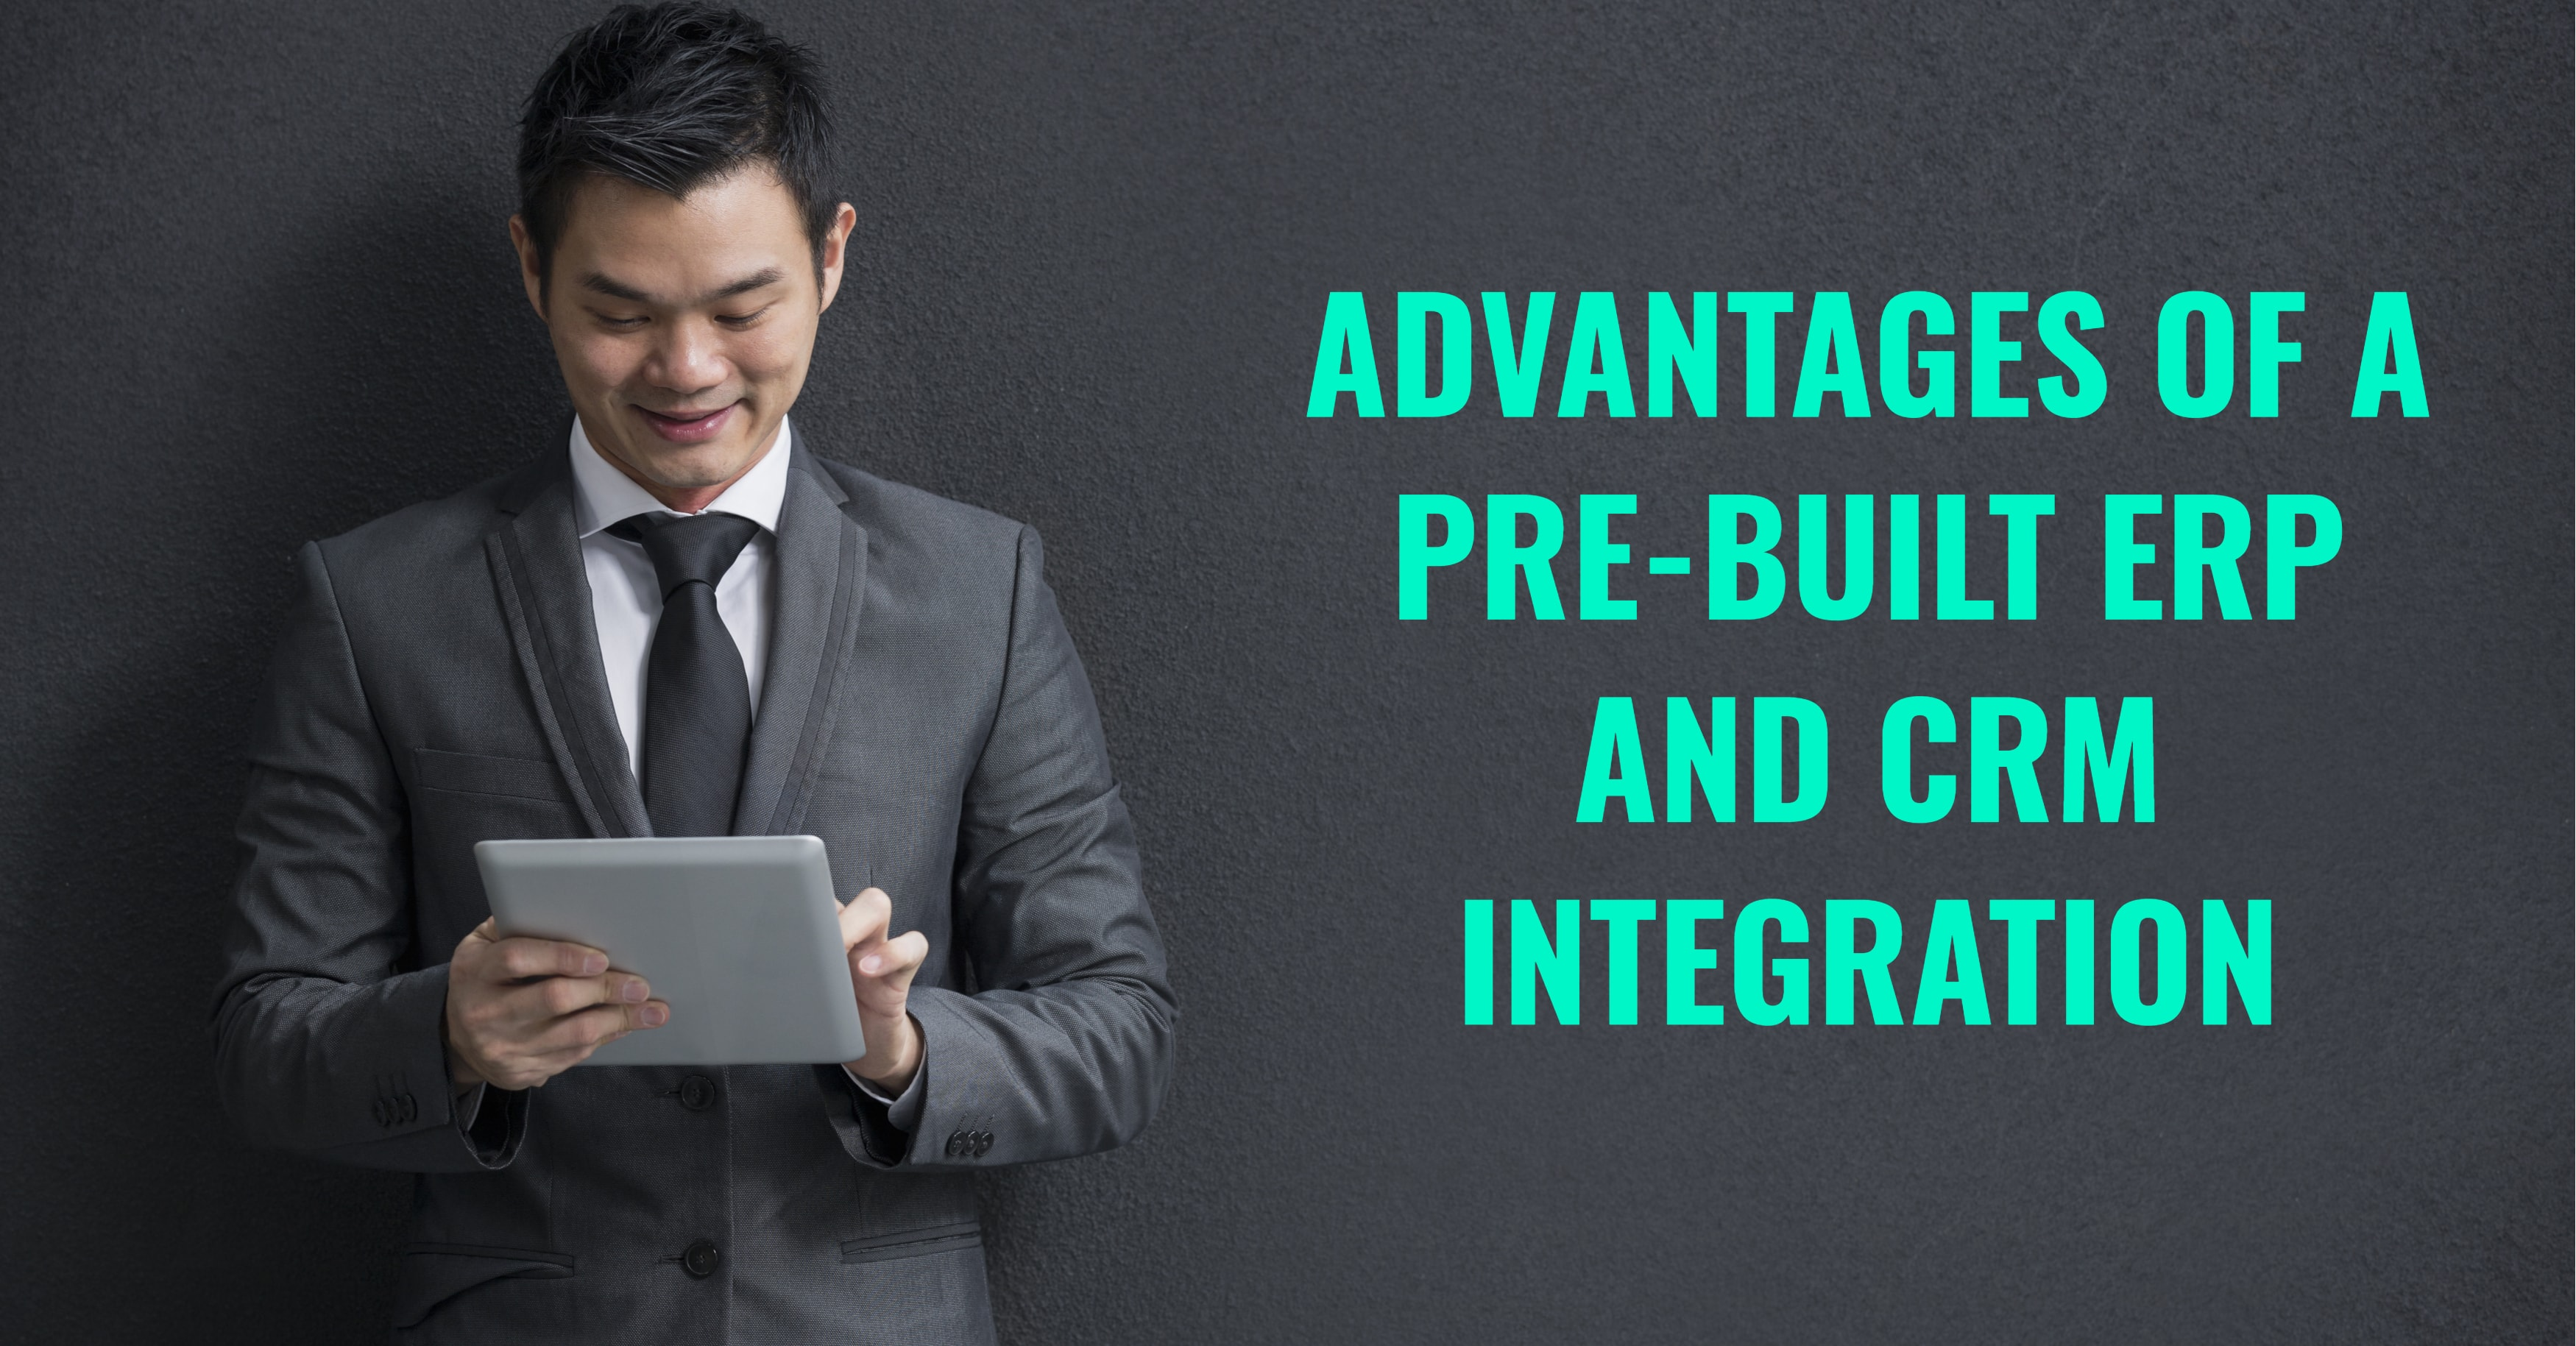 Advantages of a Pre-Built ERP and CRM Integration